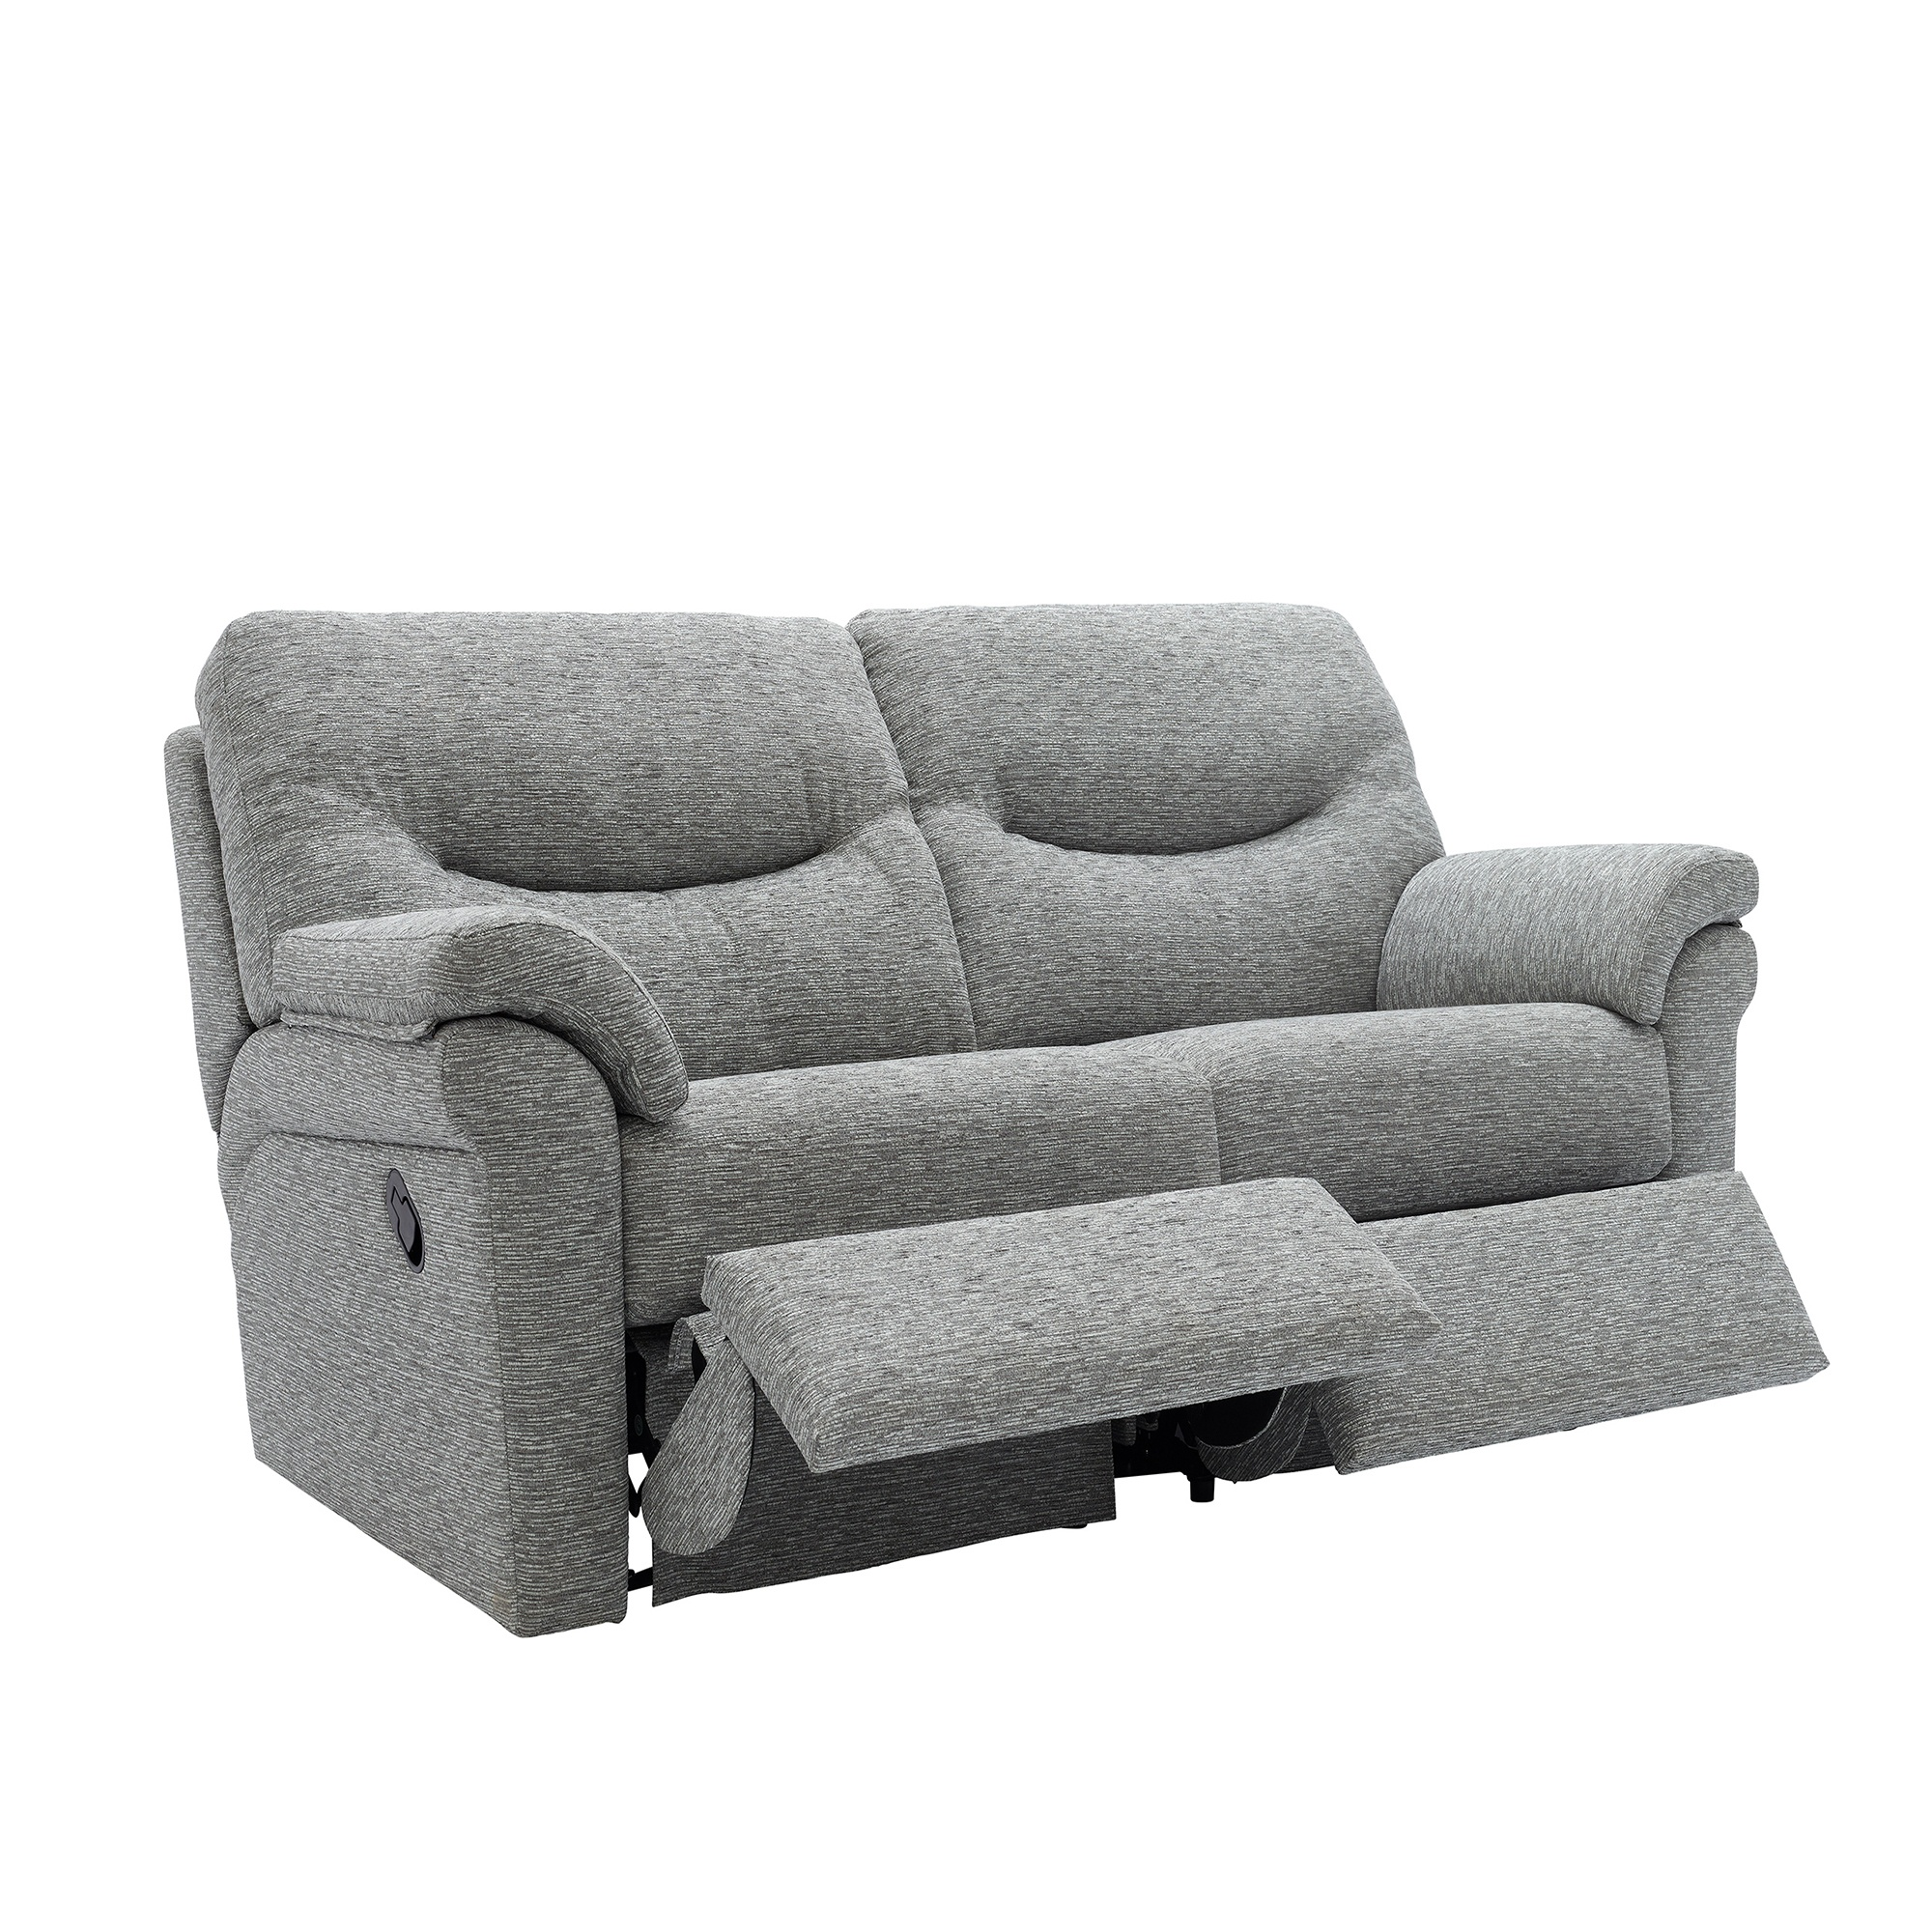 hugger recliner saskia sofa james products microfiber seat prolounger oliver grey storage reclining wall